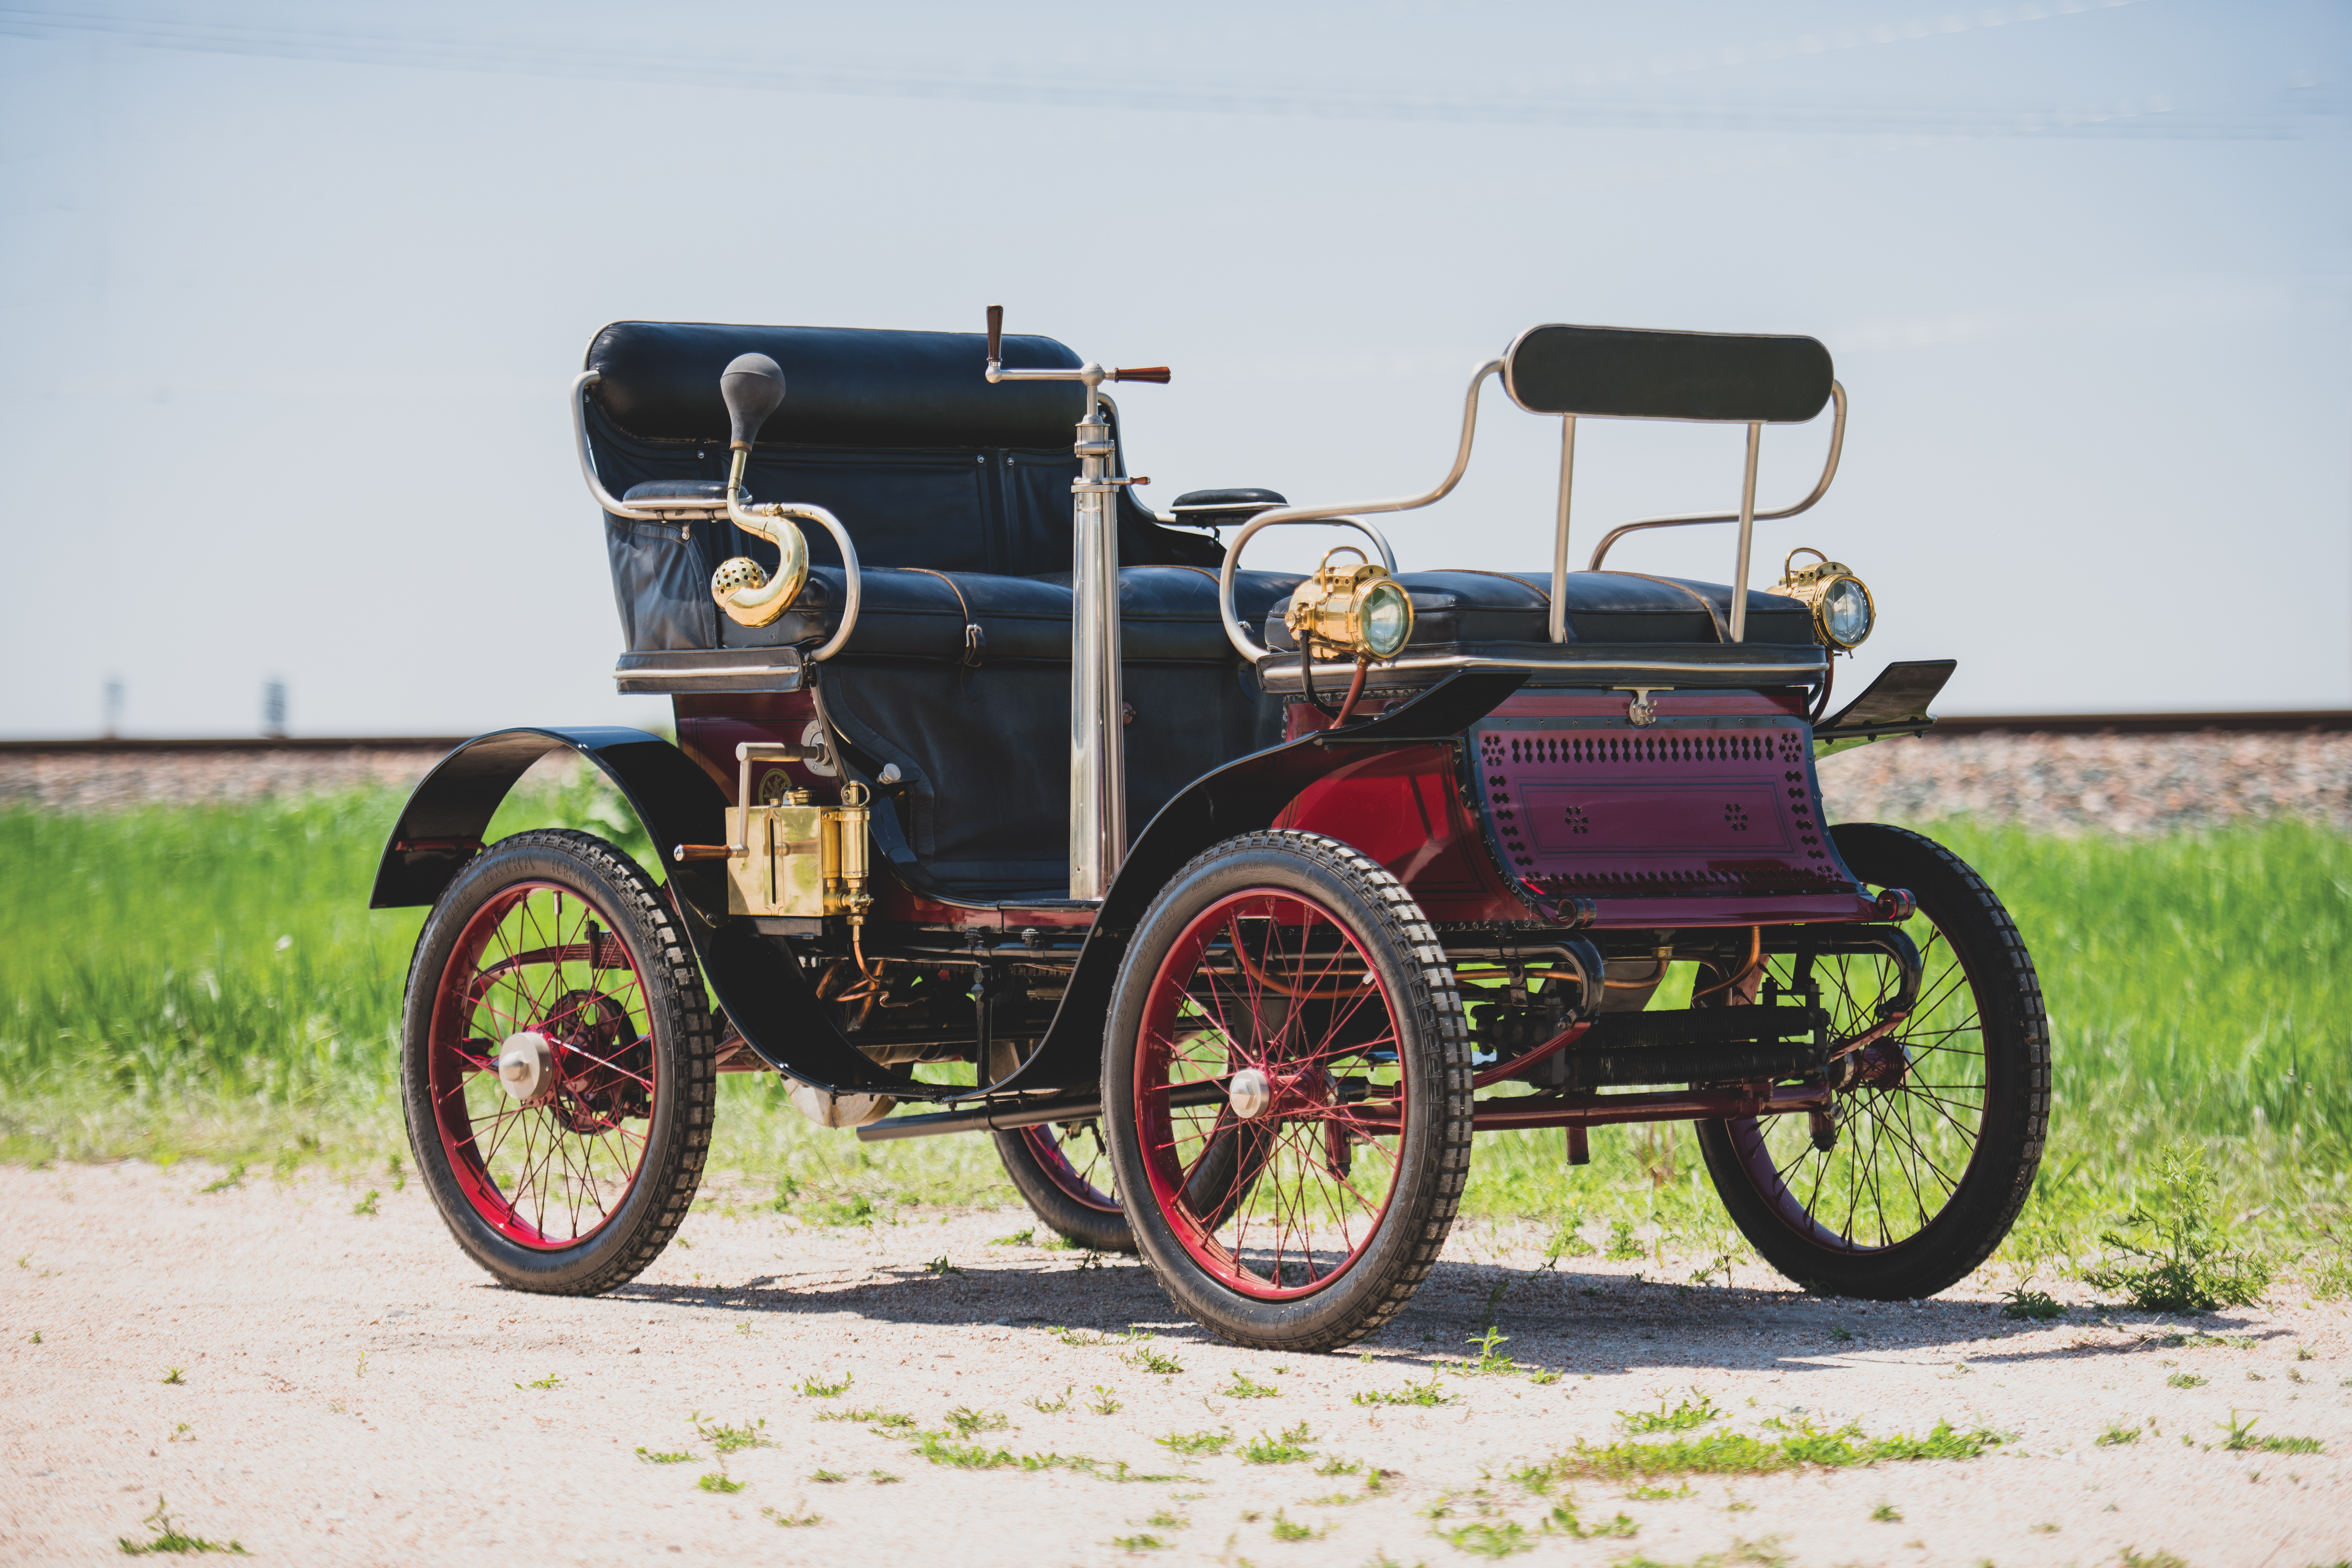 Hershey, More than 100 cars from Merrick collection heading to Hershey auction, ClassicCars.com Journal